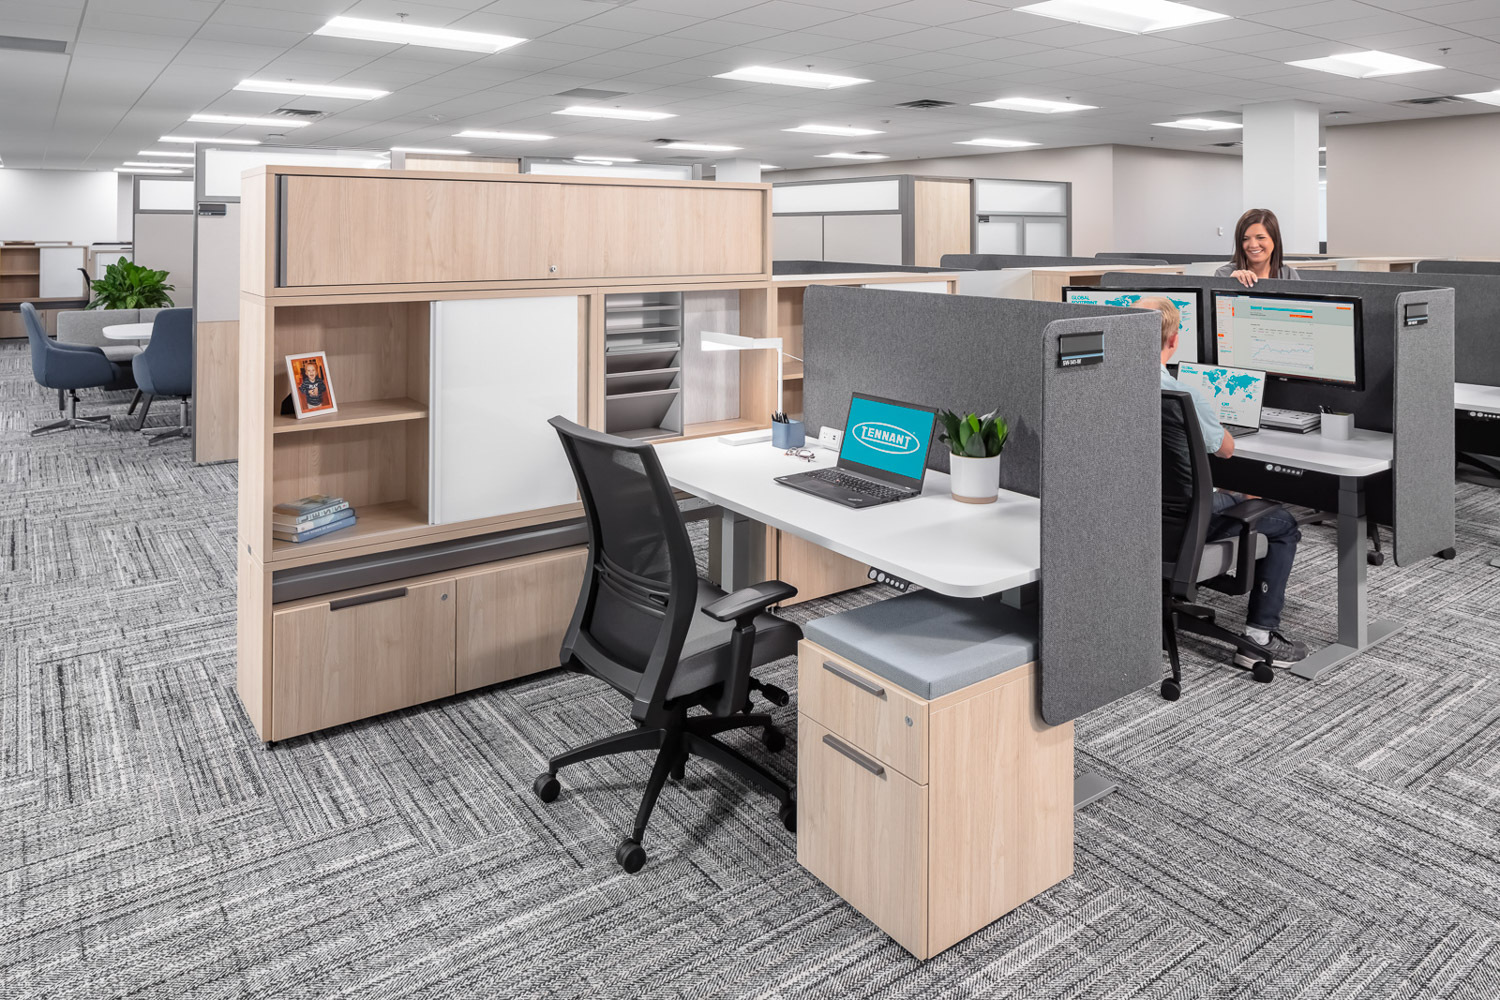 iSpace Environments Tennant Company Eden Prairie Minnesota Open Office Cubicle Layout Design